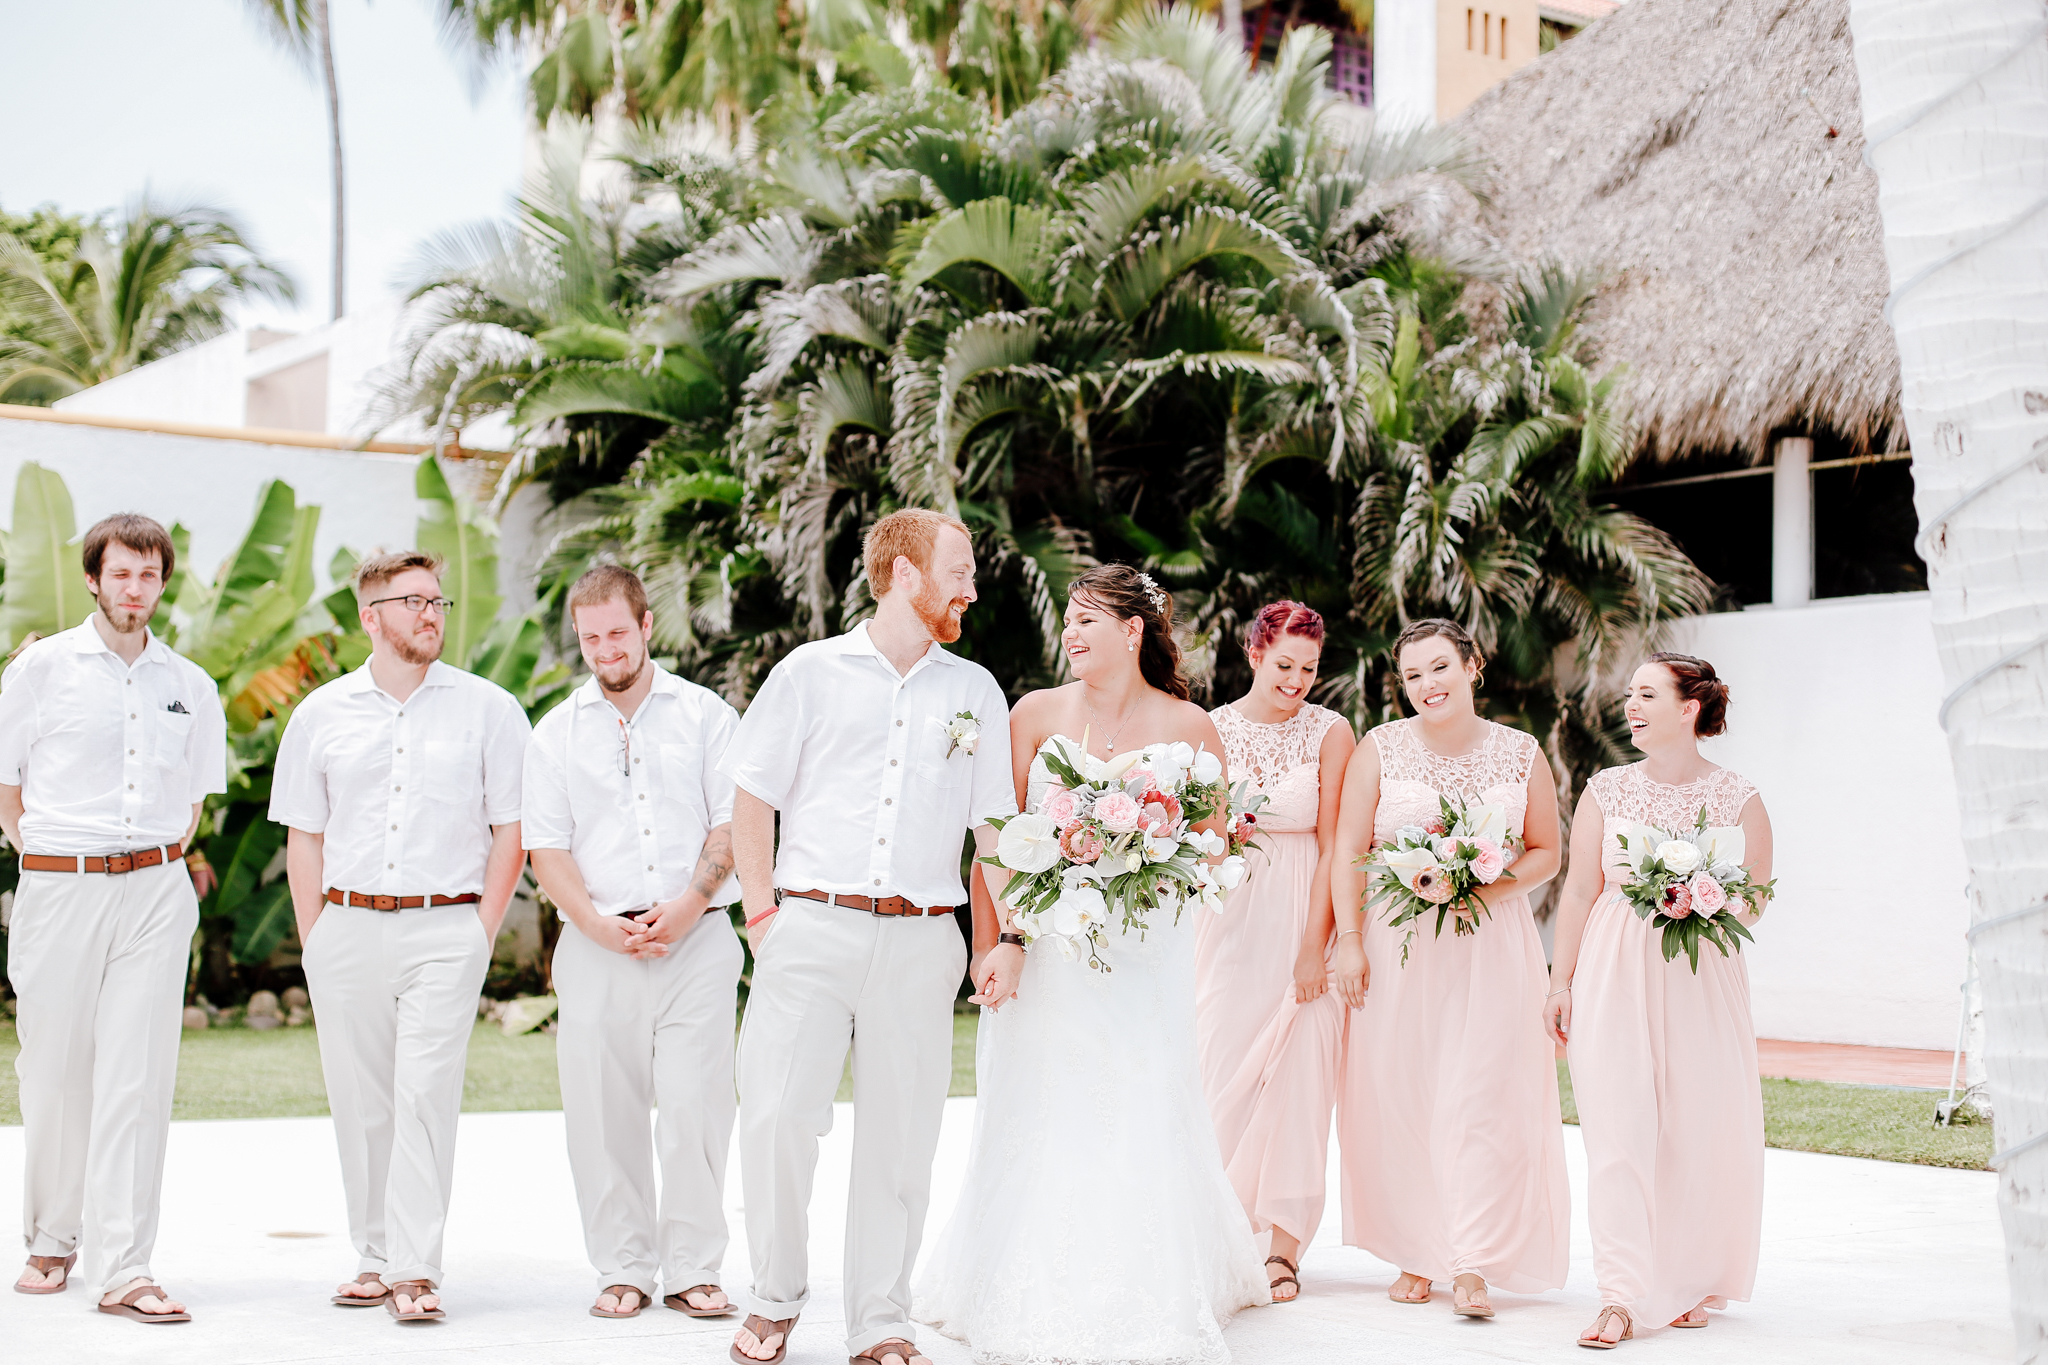 Tiffany and Ryan - Puerto Vallarta Wedding Photographer - 65.jpg